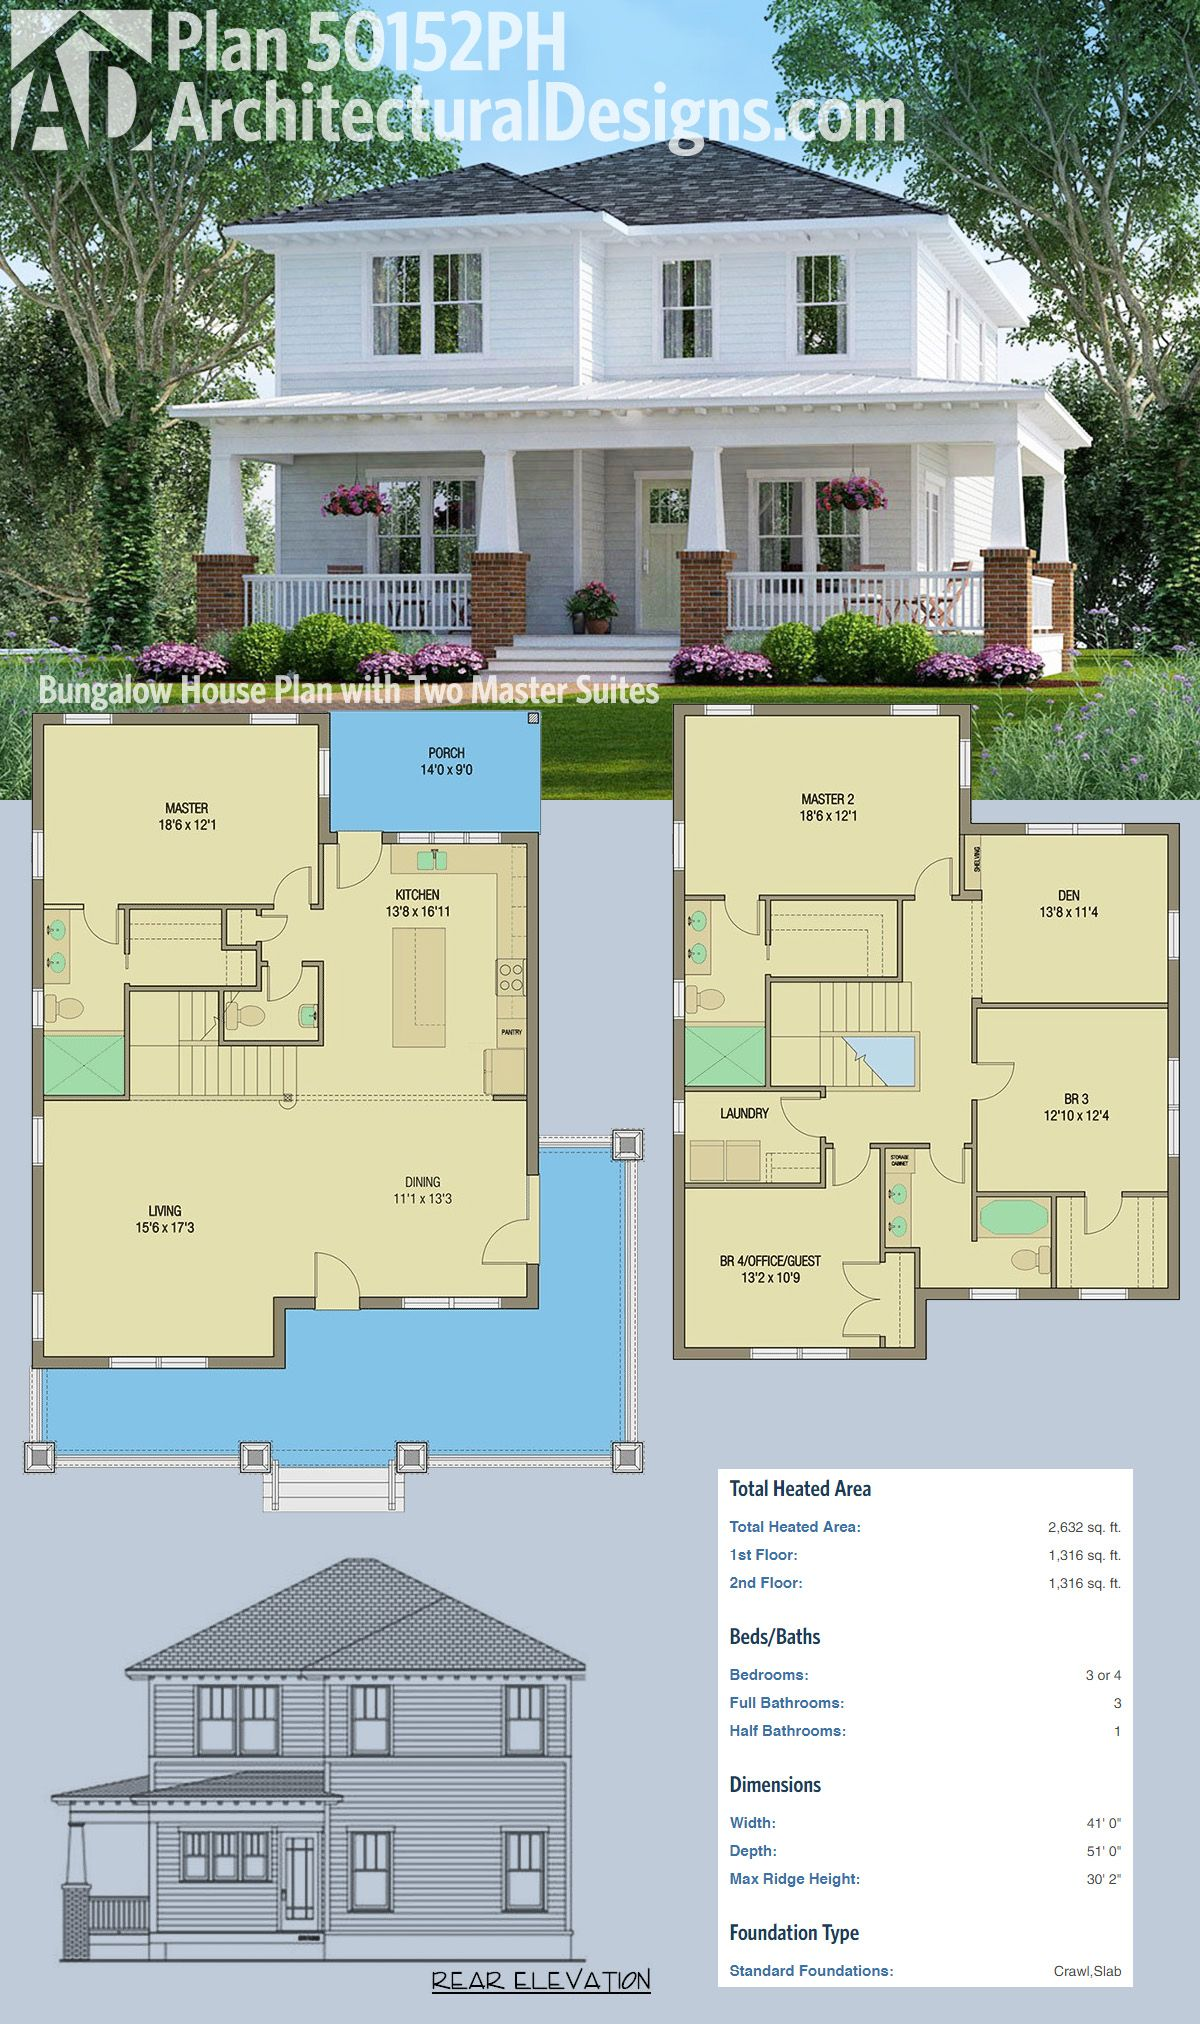 Do It Yourself Home Design: Plan 50152PH: Bungalow House Plan With Two Master Suites